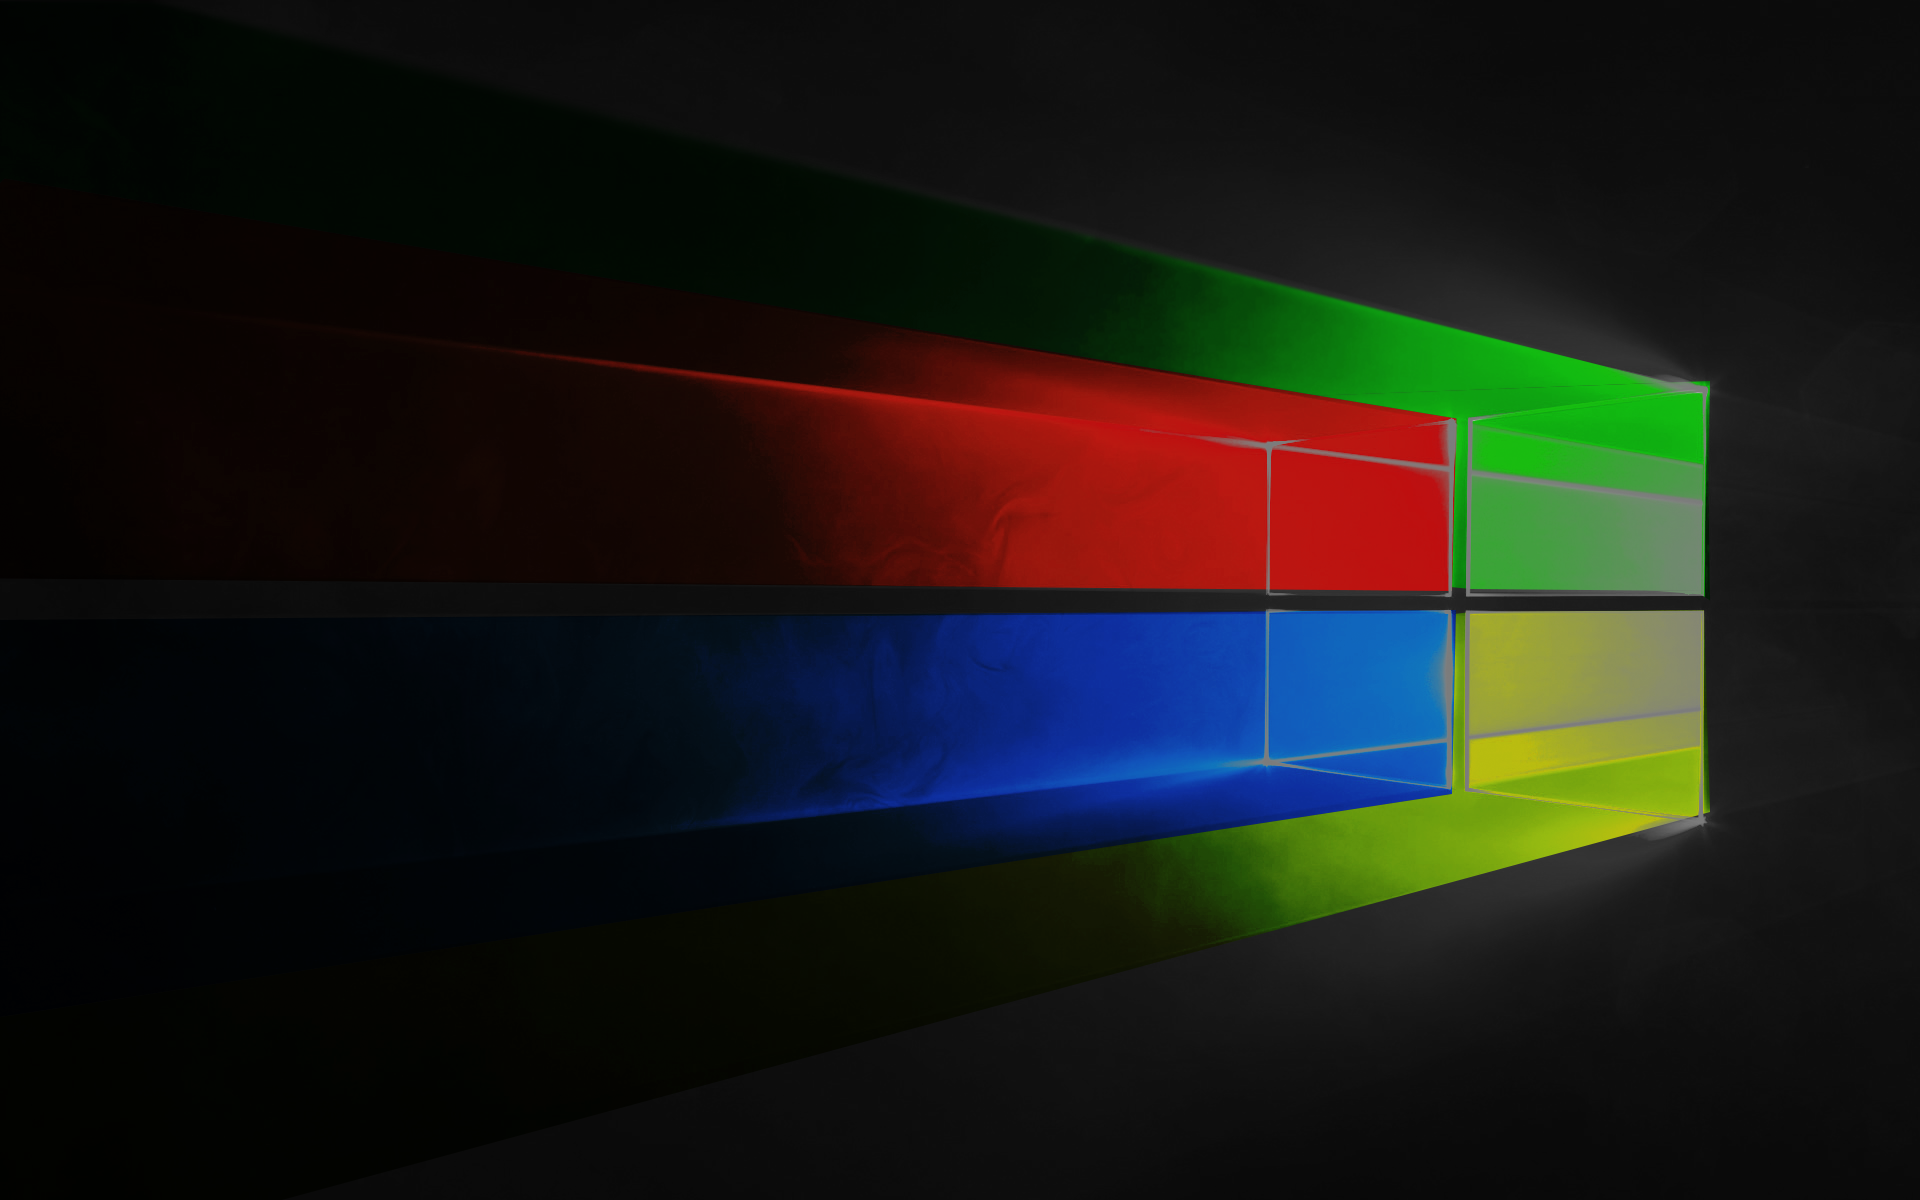 Windows 10 Art Wallpaper Wallpapersafari